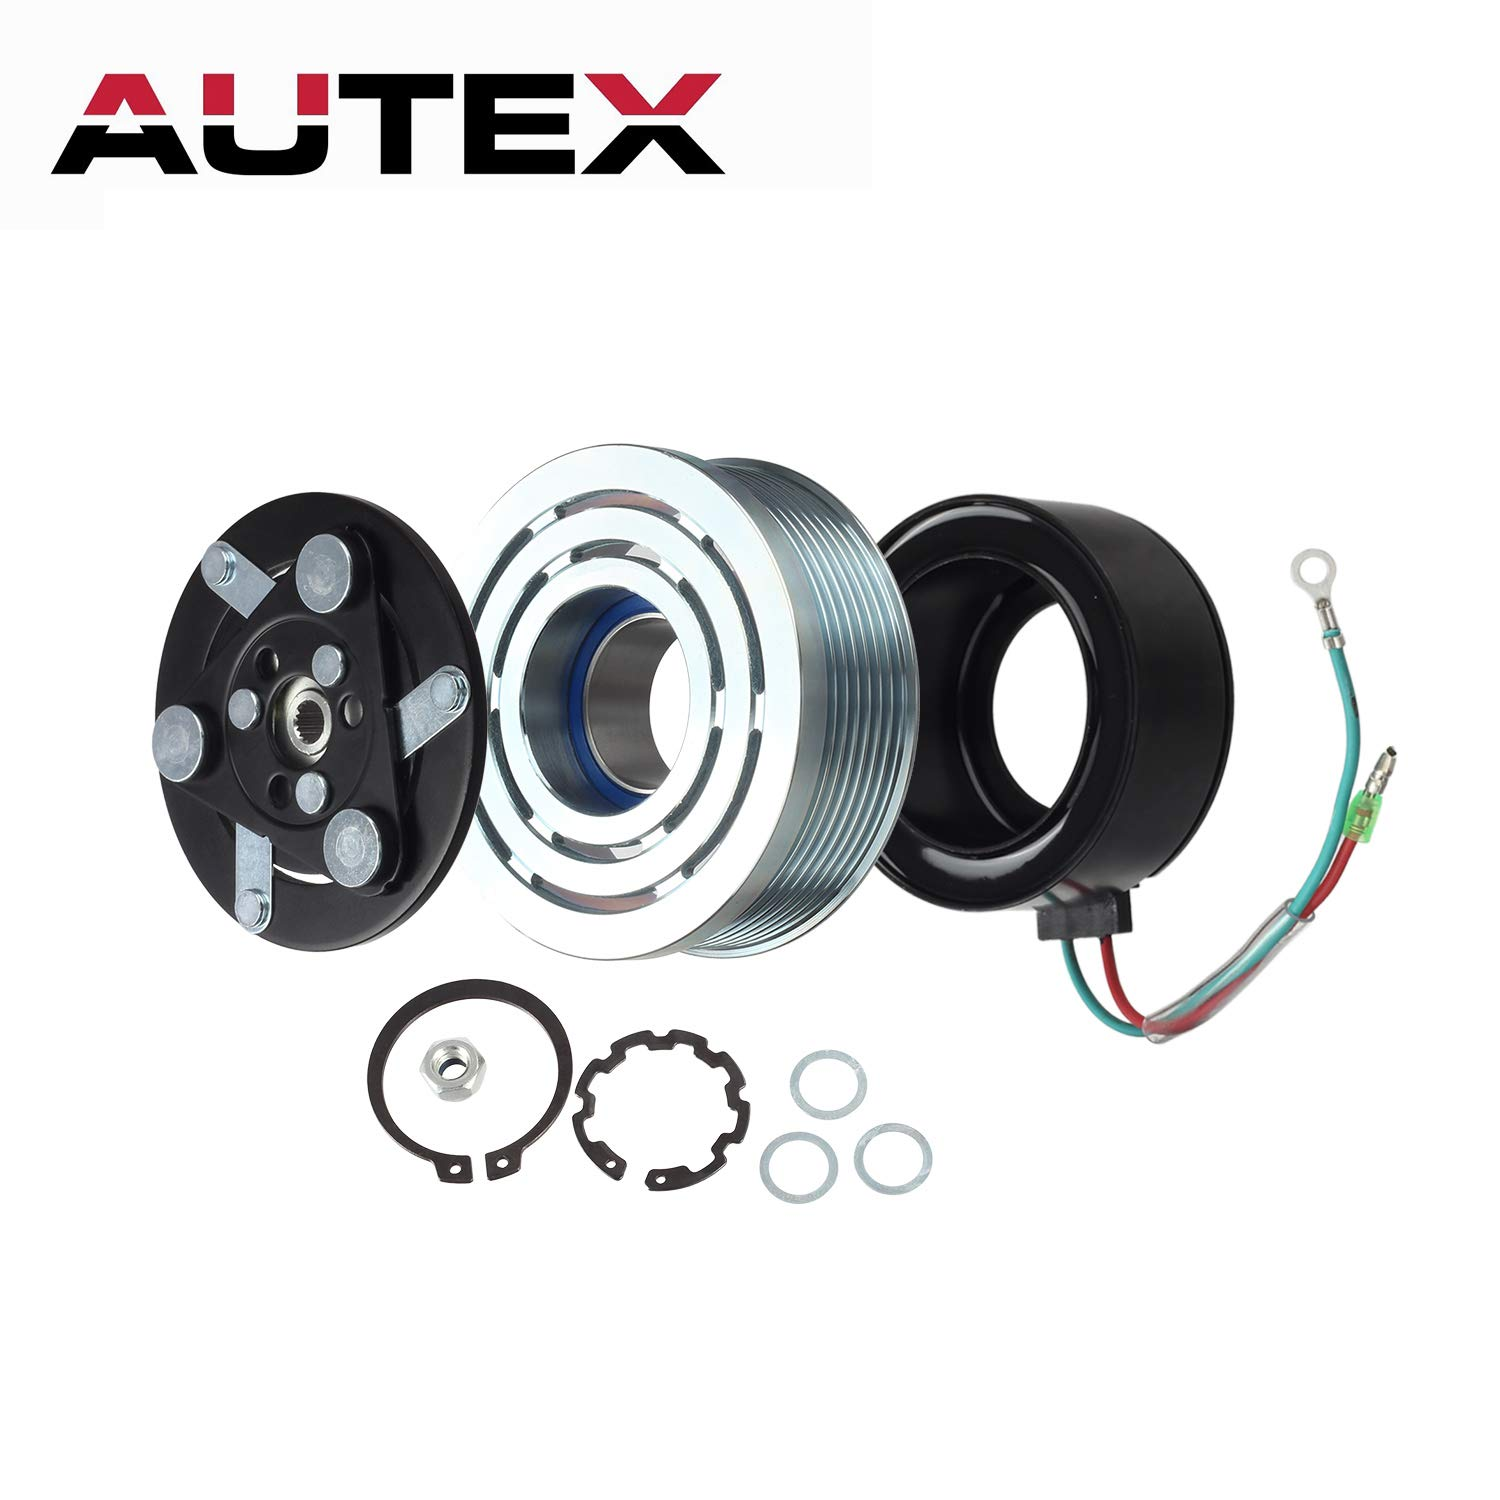 Autex Ac A C Compressor Clutch Coil Assembly Kit Honda Civic Wiring 80221swaa02 38810rrba01 4918u1 Replacement For 2006 2007 2008 2009 2010 2011 18l